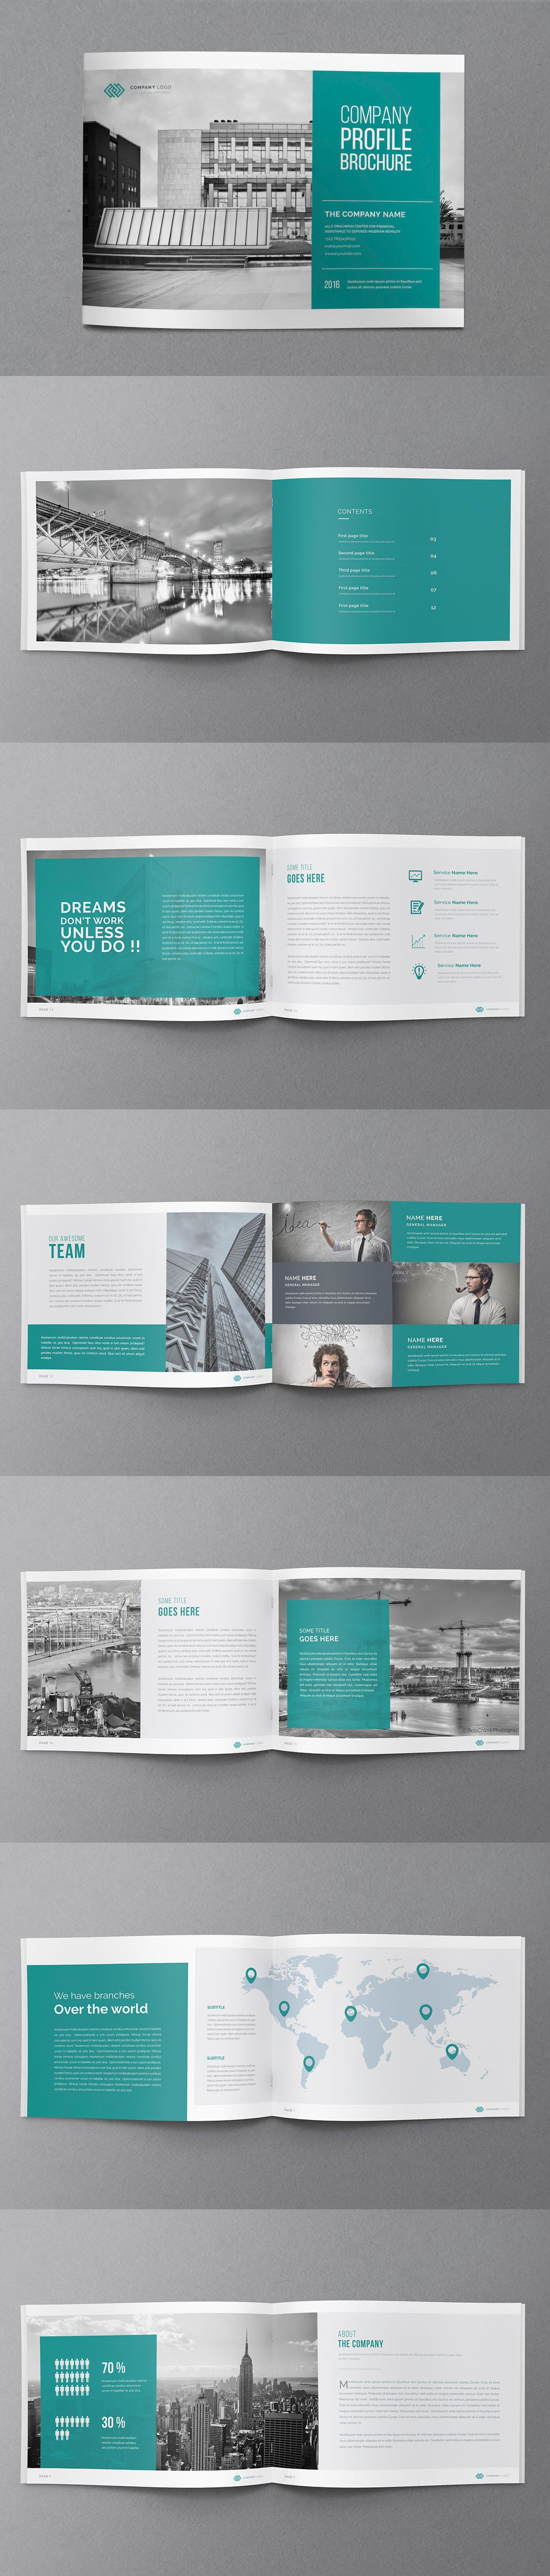 Annual Report Brochure Template InDesign INDD - 20 Pages A4 | BRtech ...